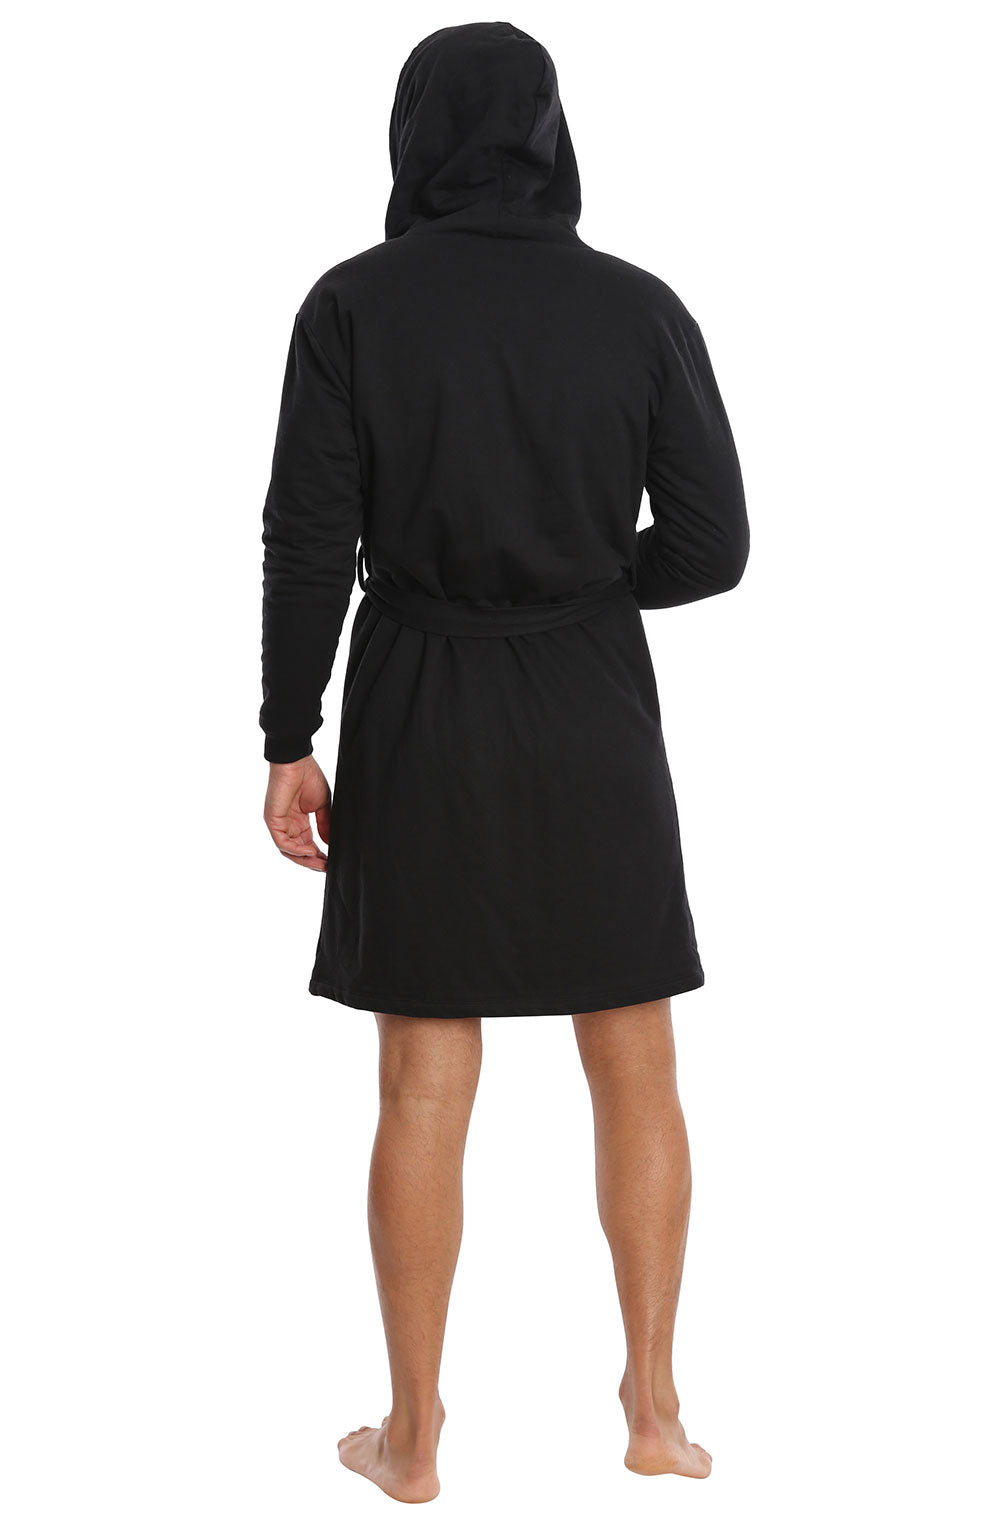 Black Sherpa Lined French Terry Robe - jachs